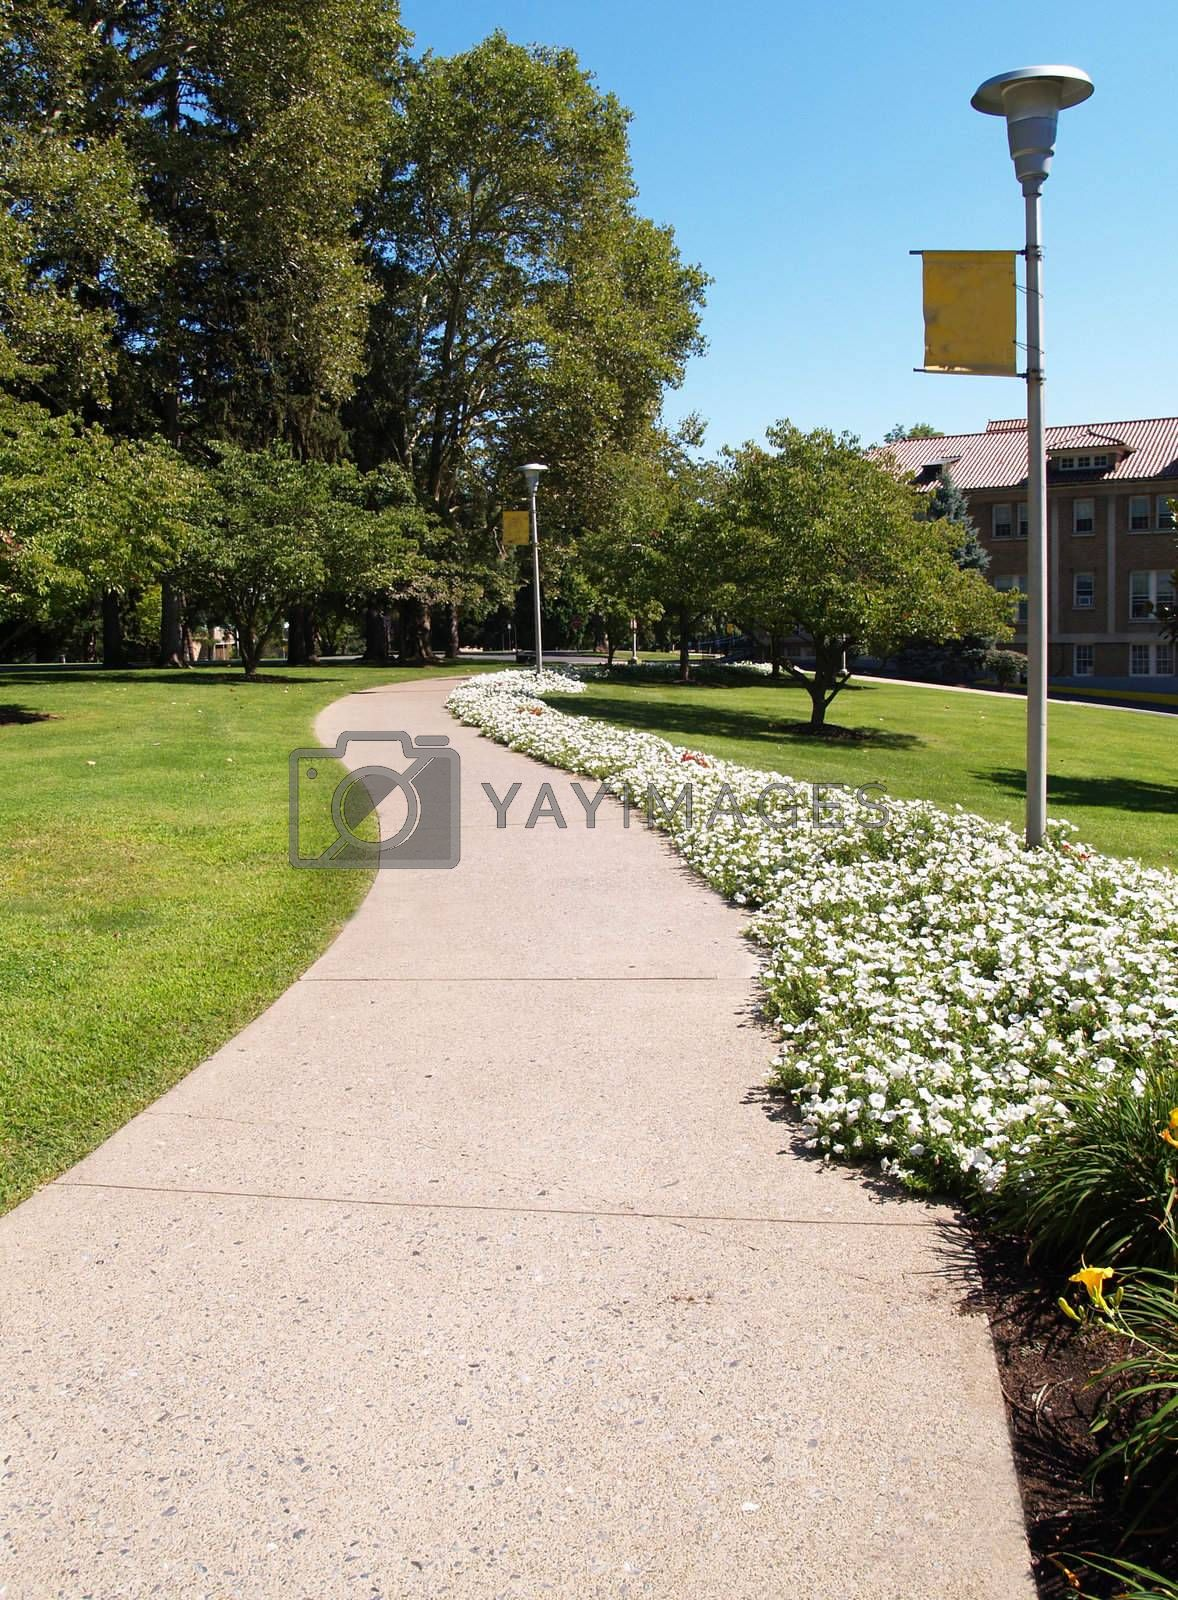 Royalty free image of curving sidewalk on a college campus by cfarmer